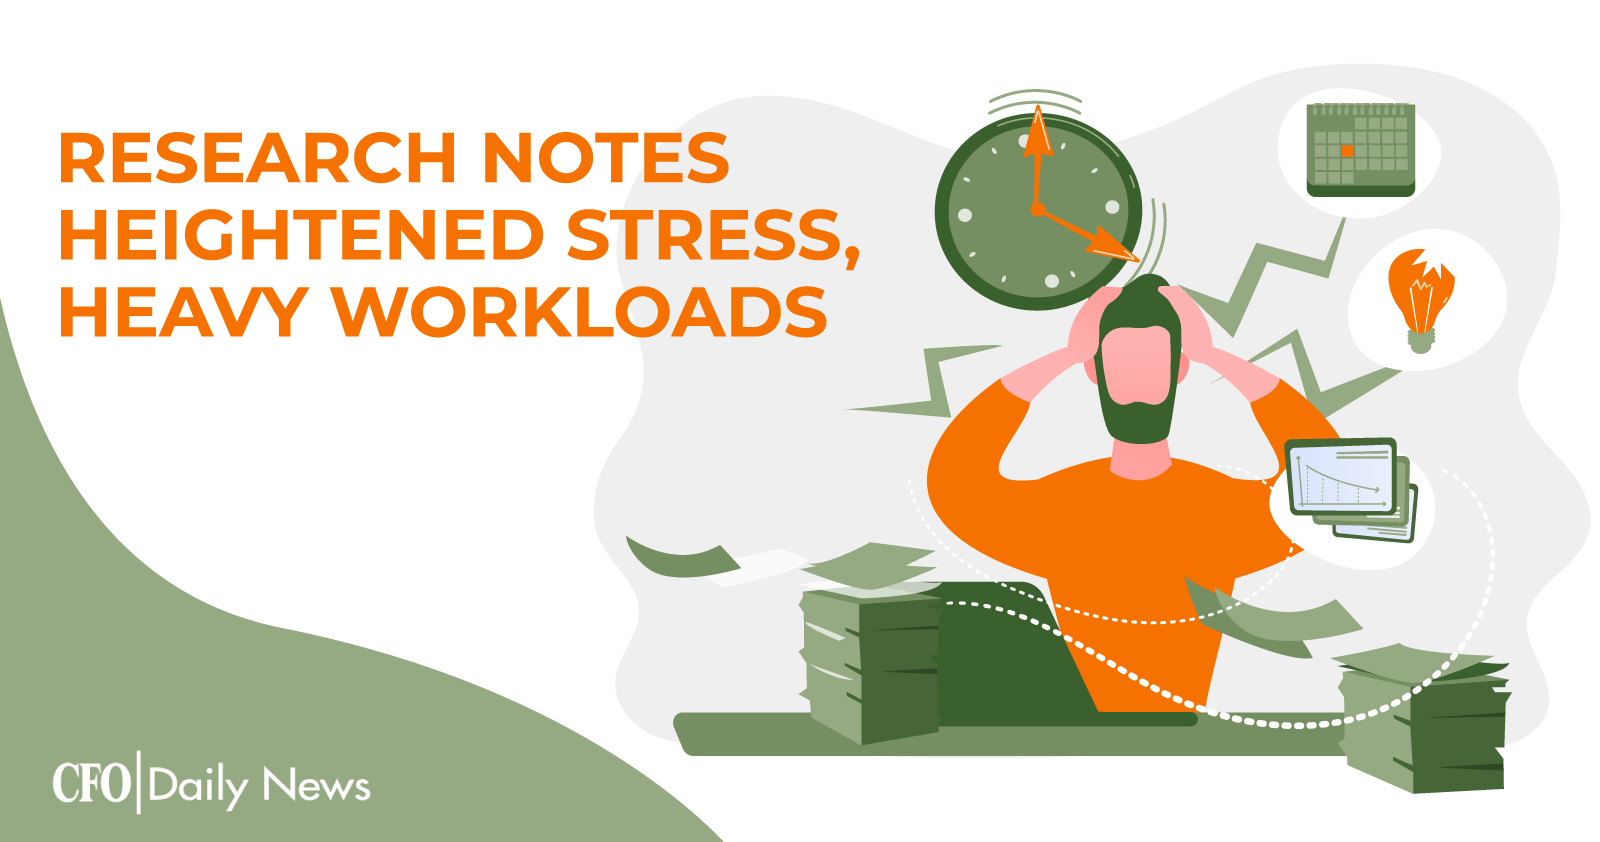 Research Notes Heightened Stress Heavy Workloads